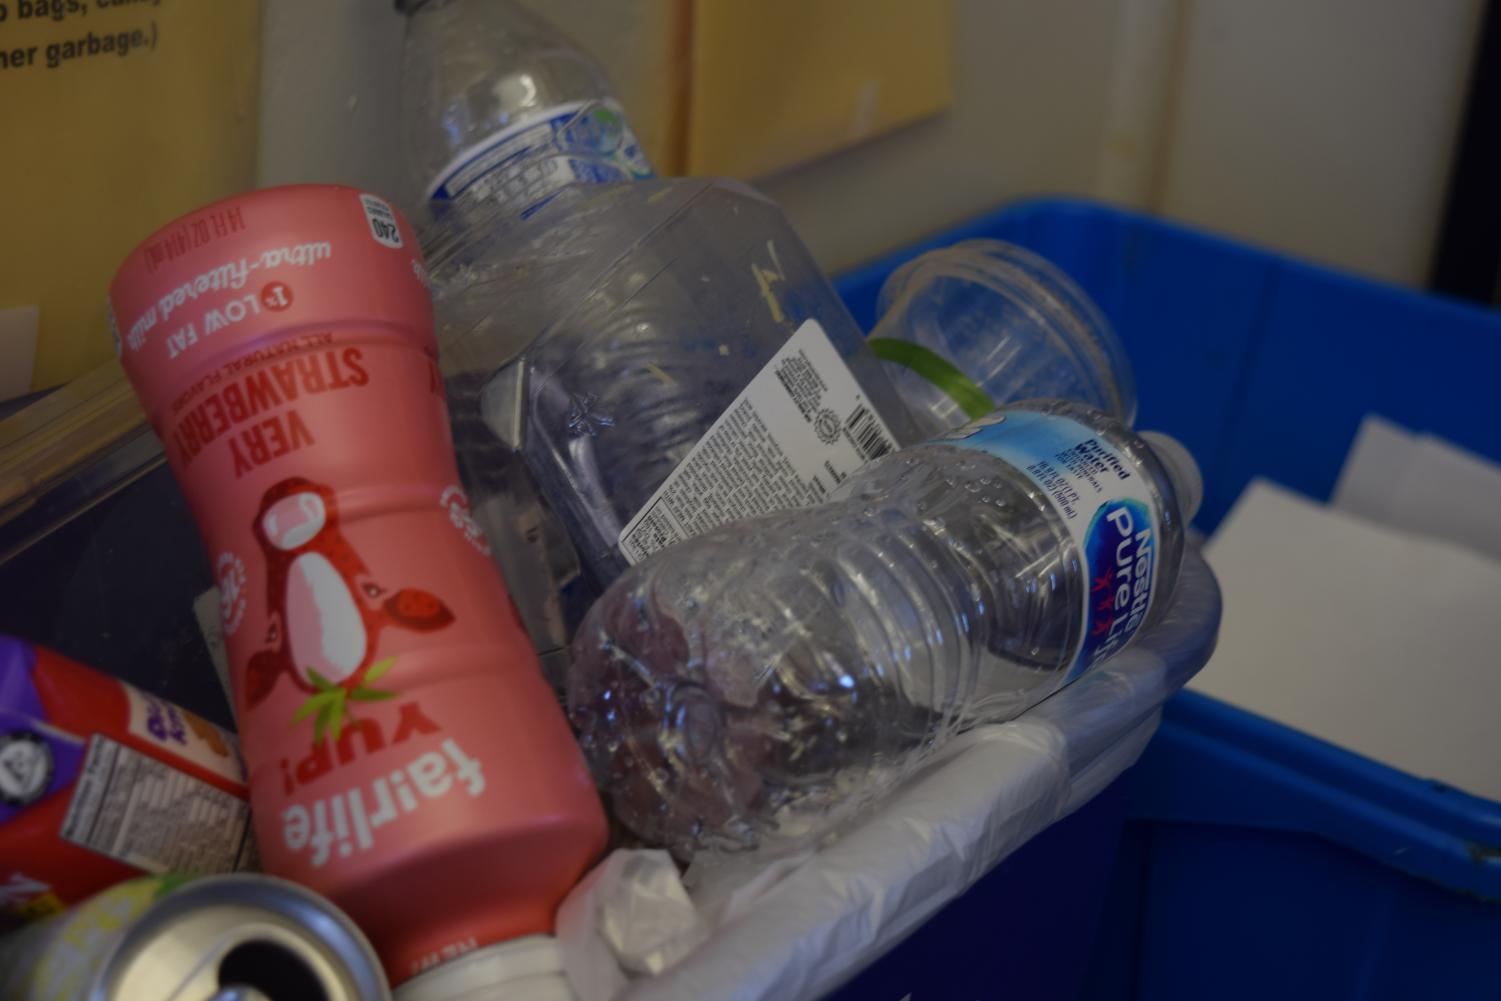 Recycling can not only benefit the environment, but lower bills as well.